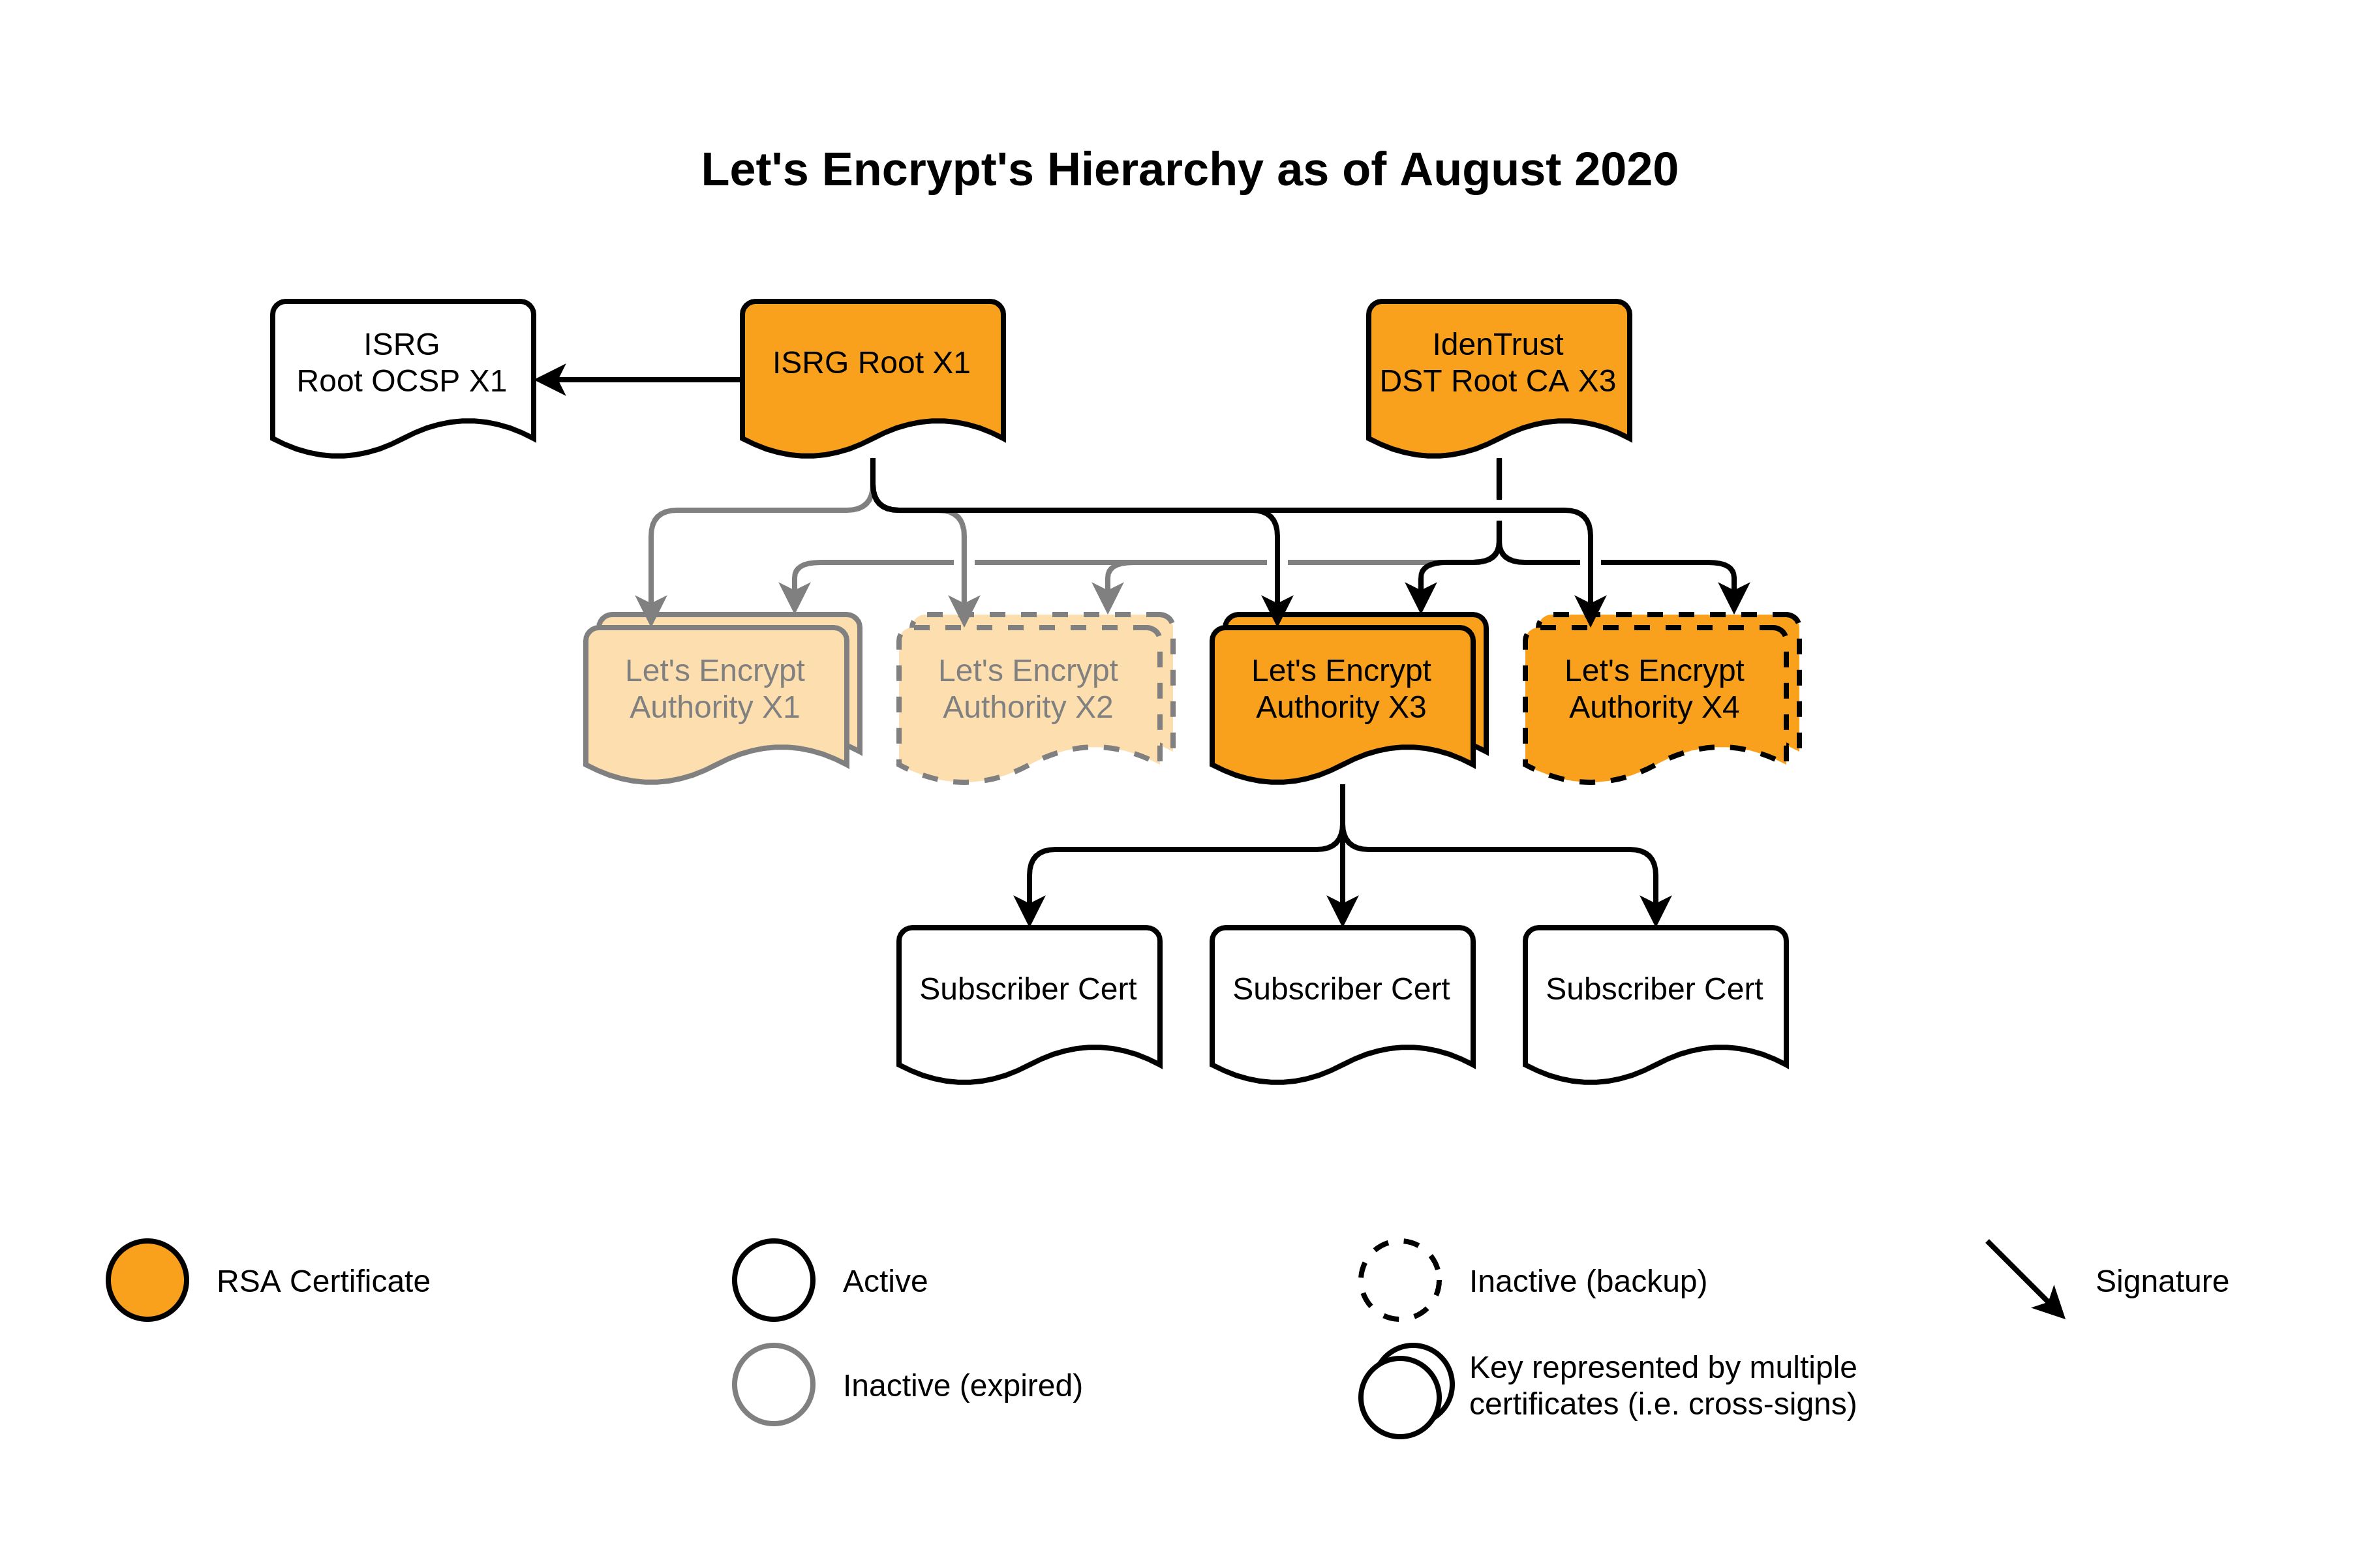 Let's Encrypt's hierarchy as of August 2020